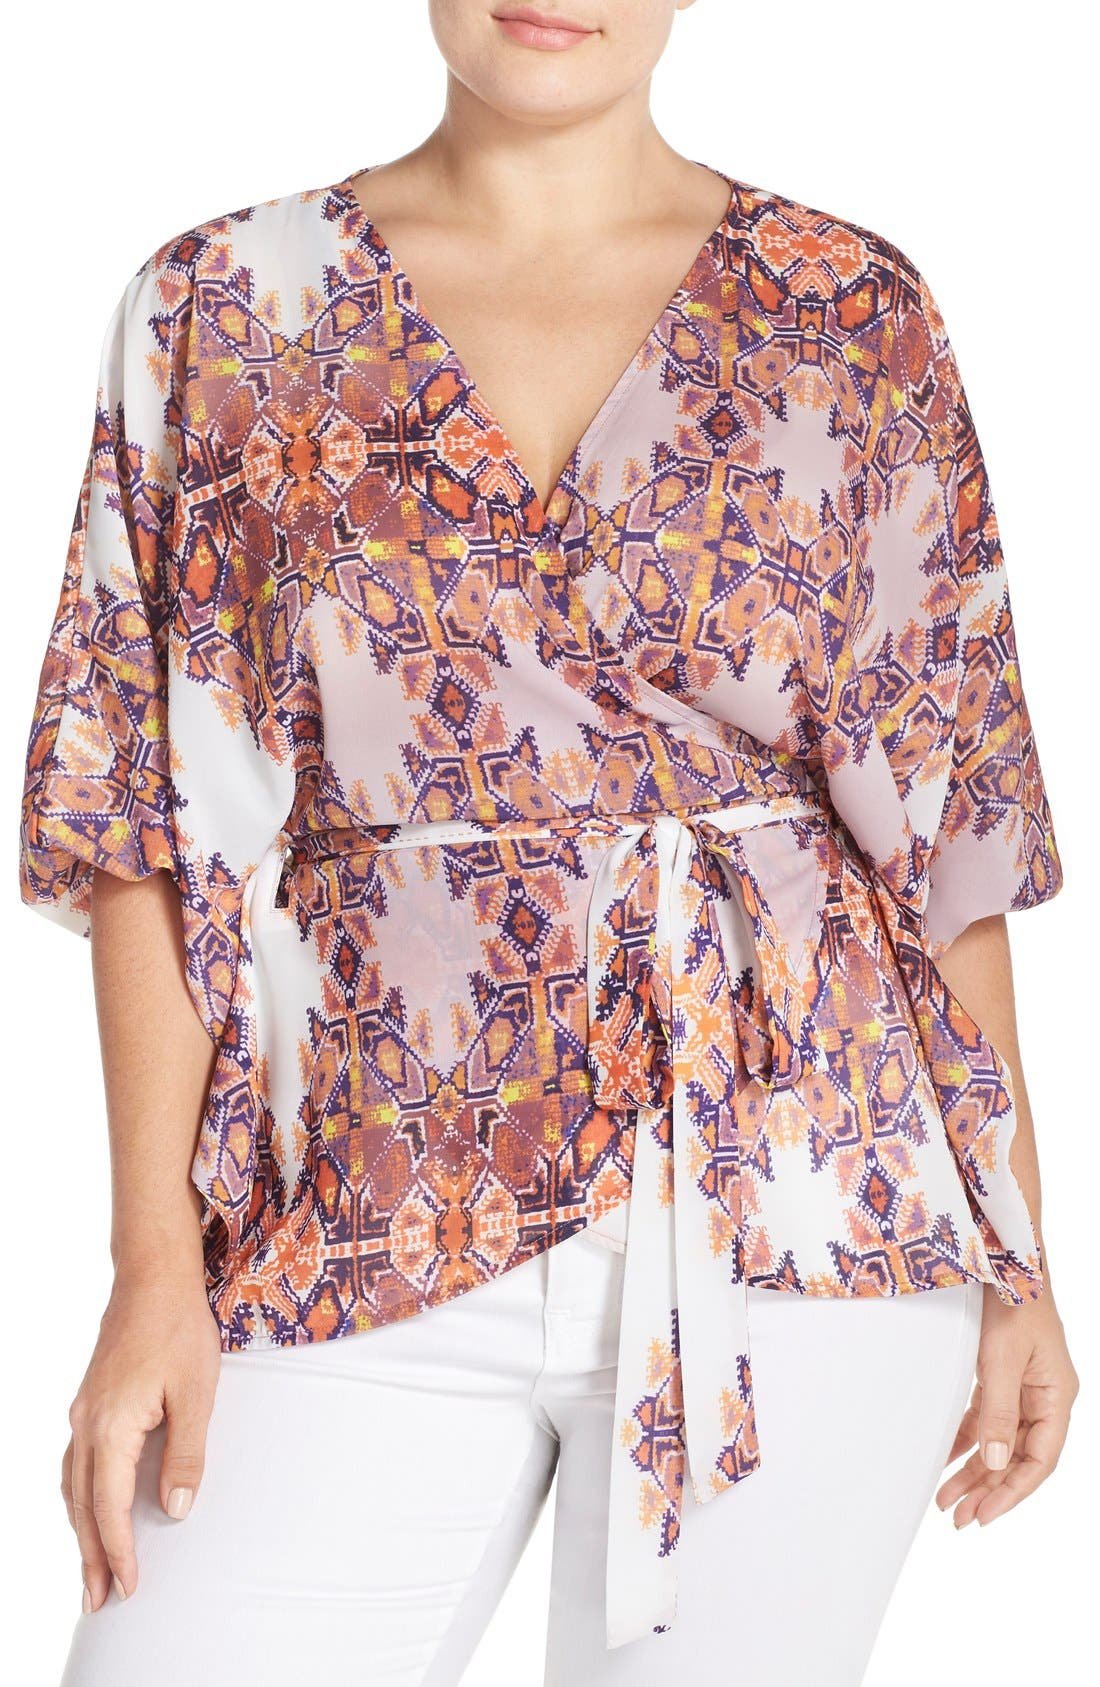 Alternate Image 1 Selected - City Chic Geometric Print Wrap Top (Plus Size)